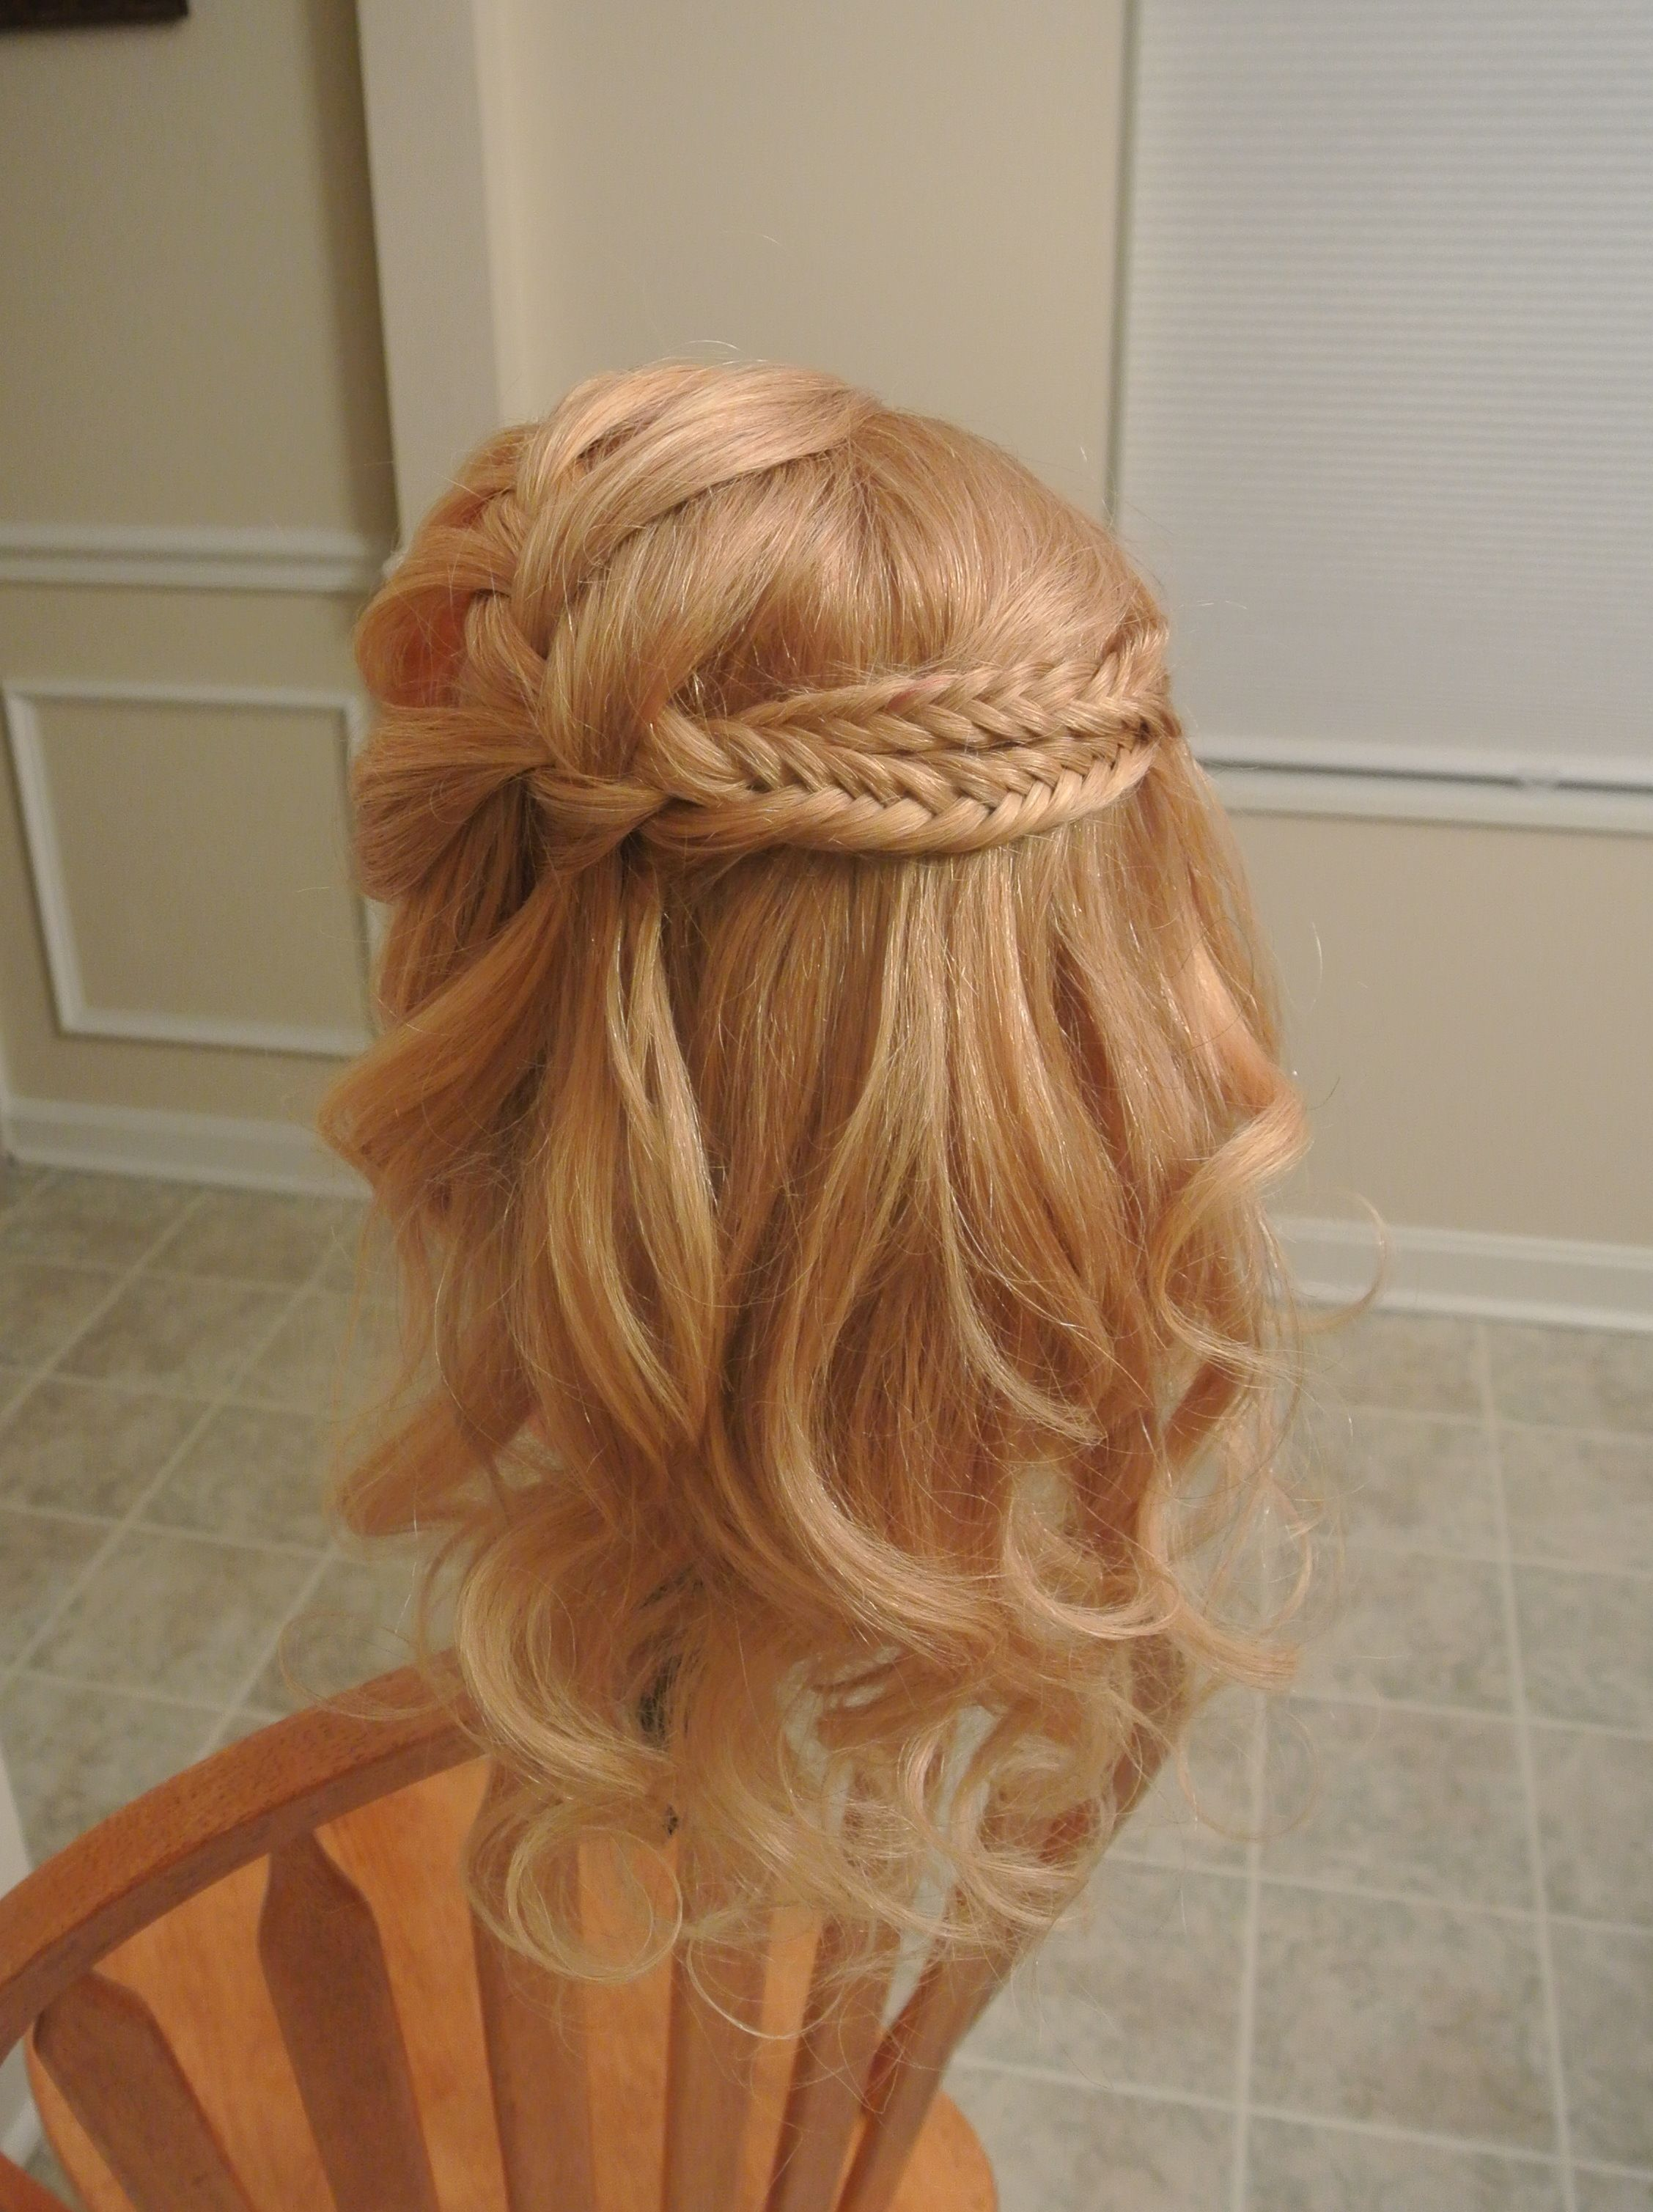 Simply Captivating On-Site Beauty Services | Fish tail ...